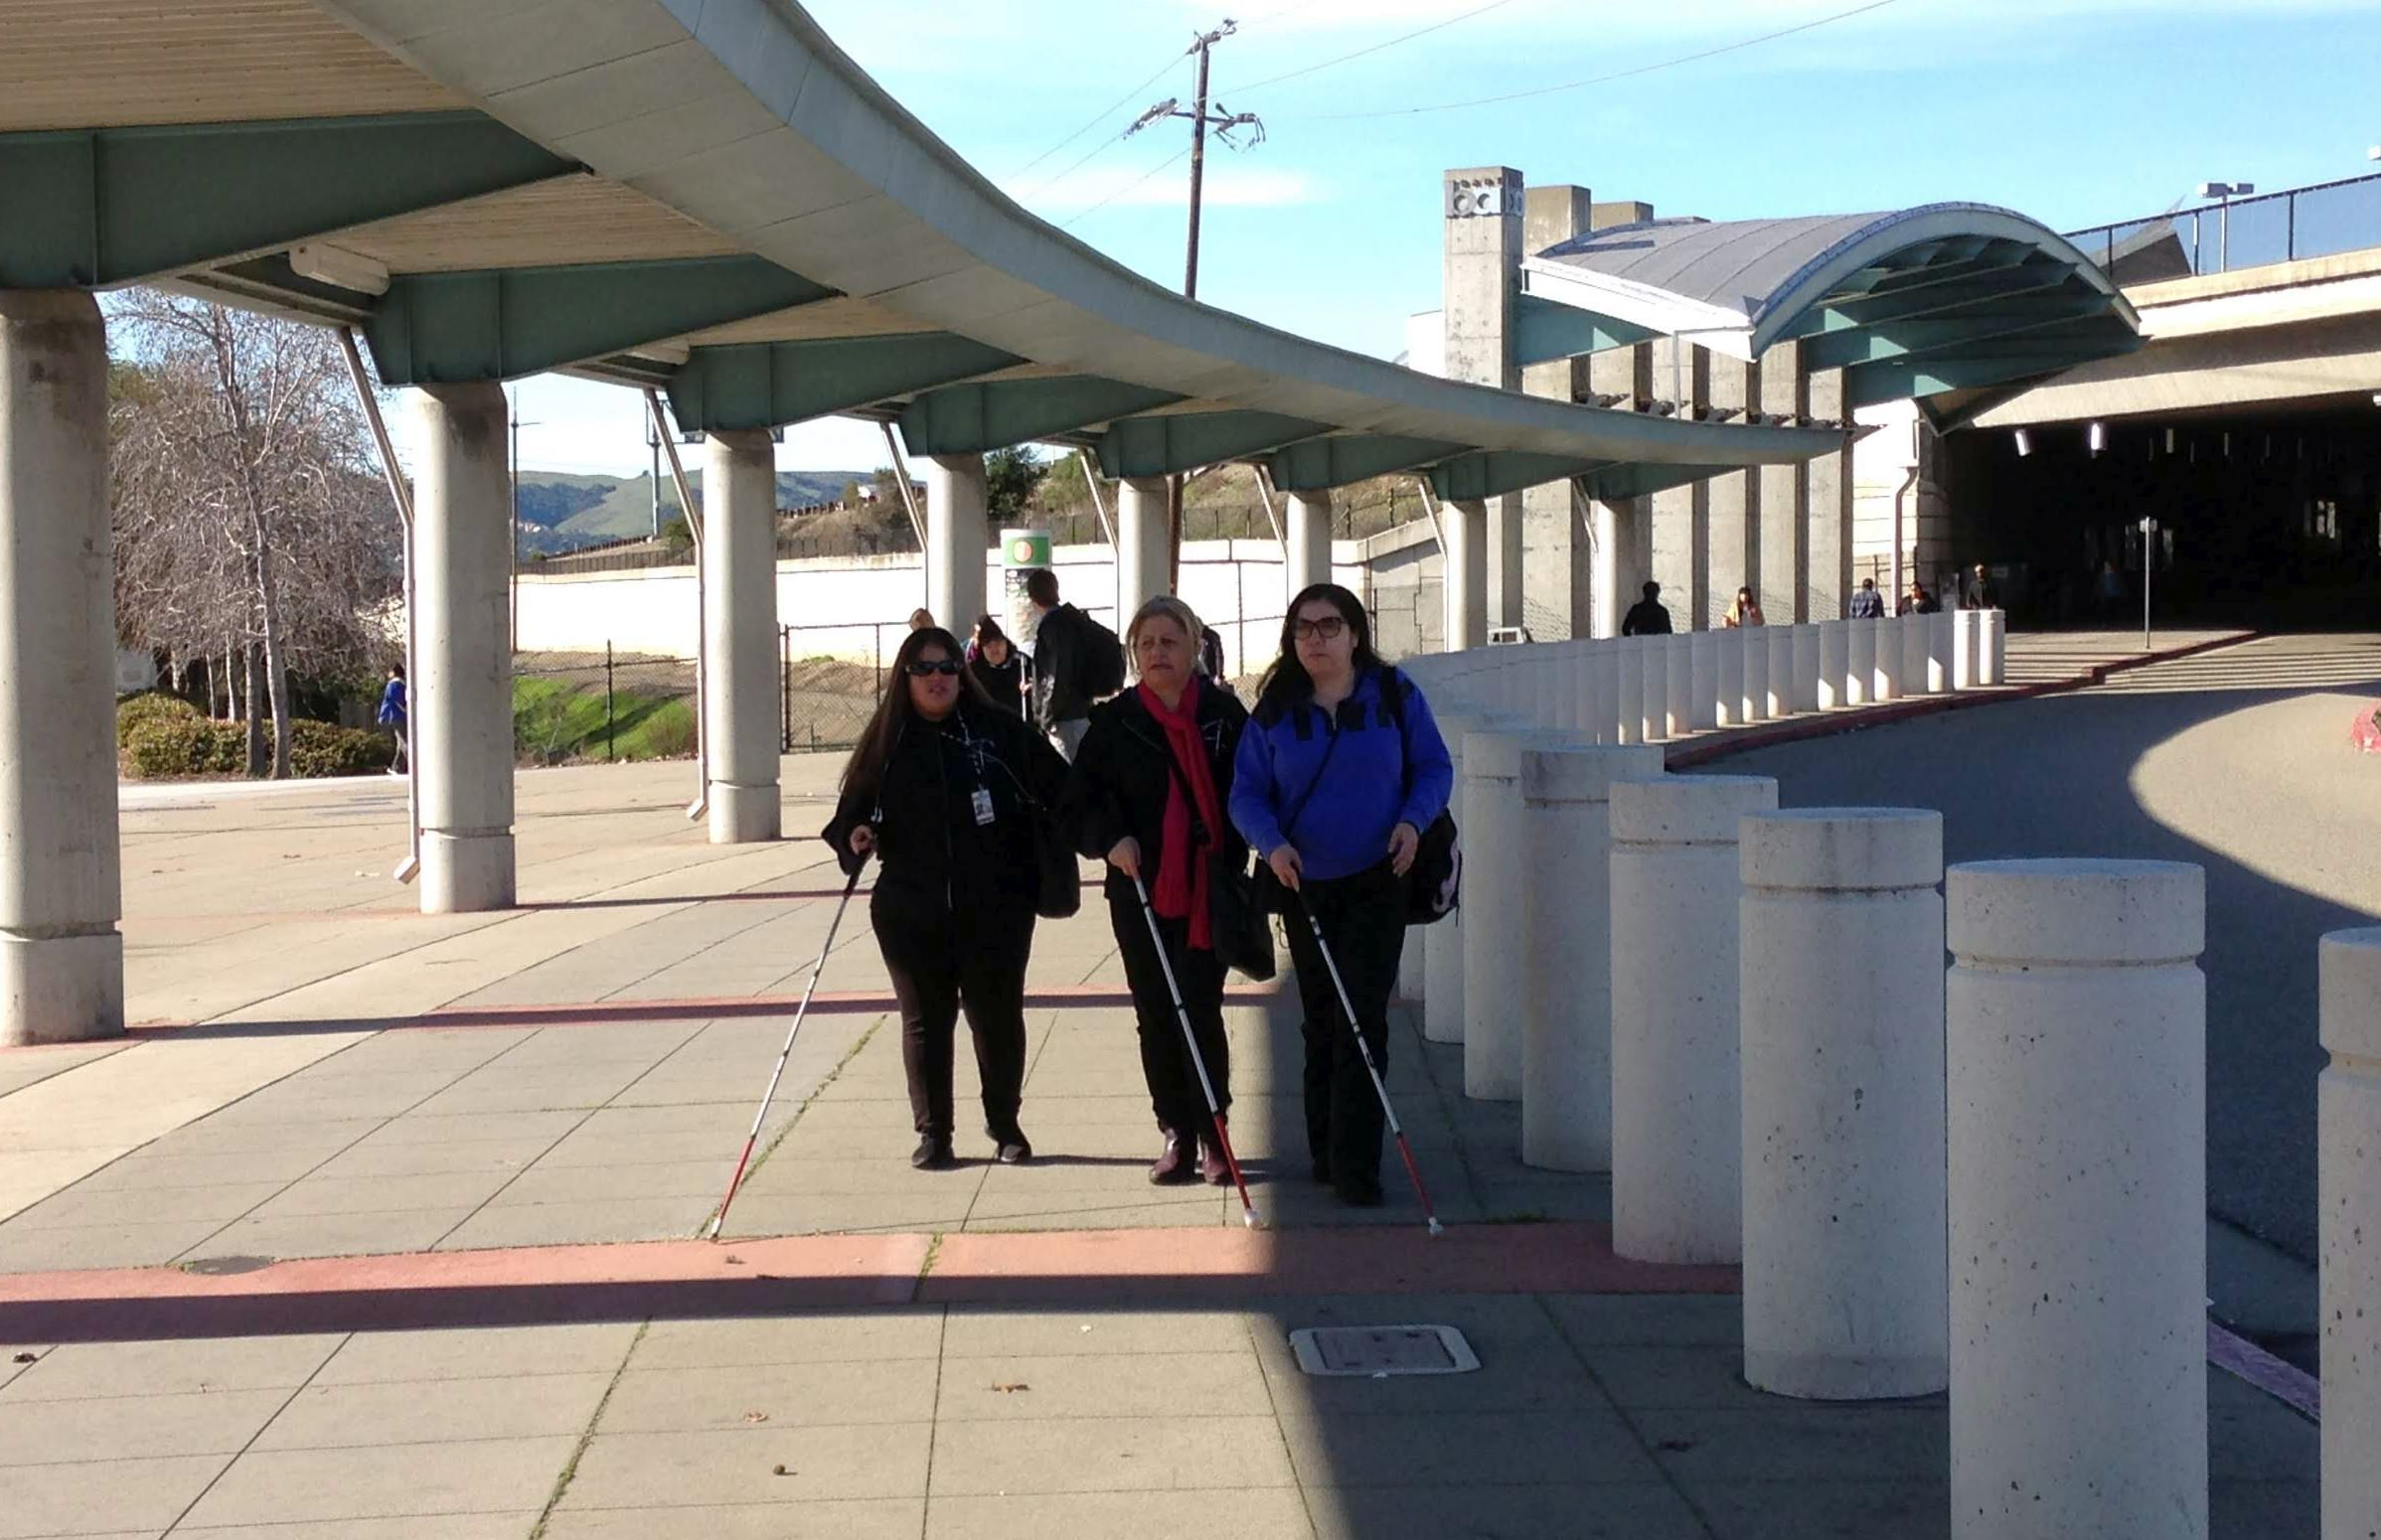 Women use white canes to navigate a BART station.